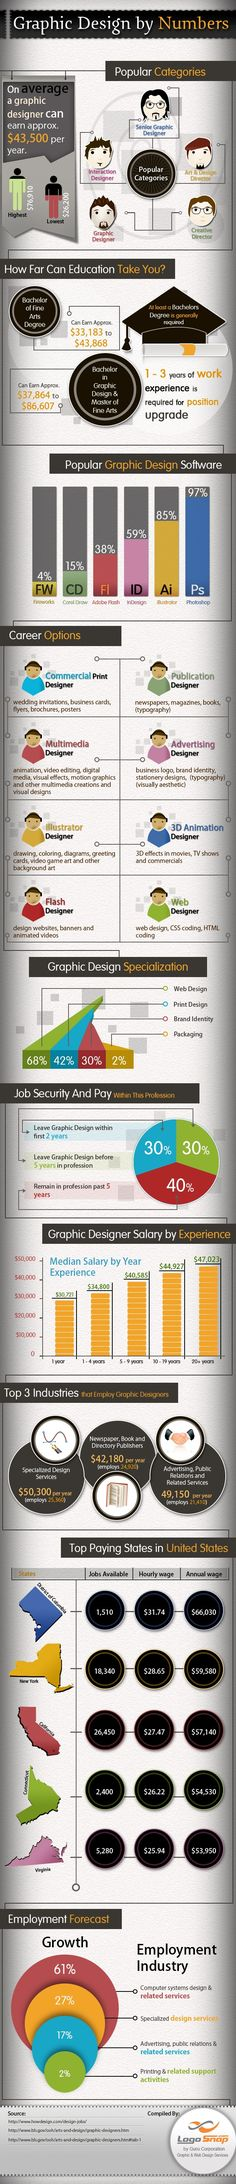 Graphic Design by Numbers